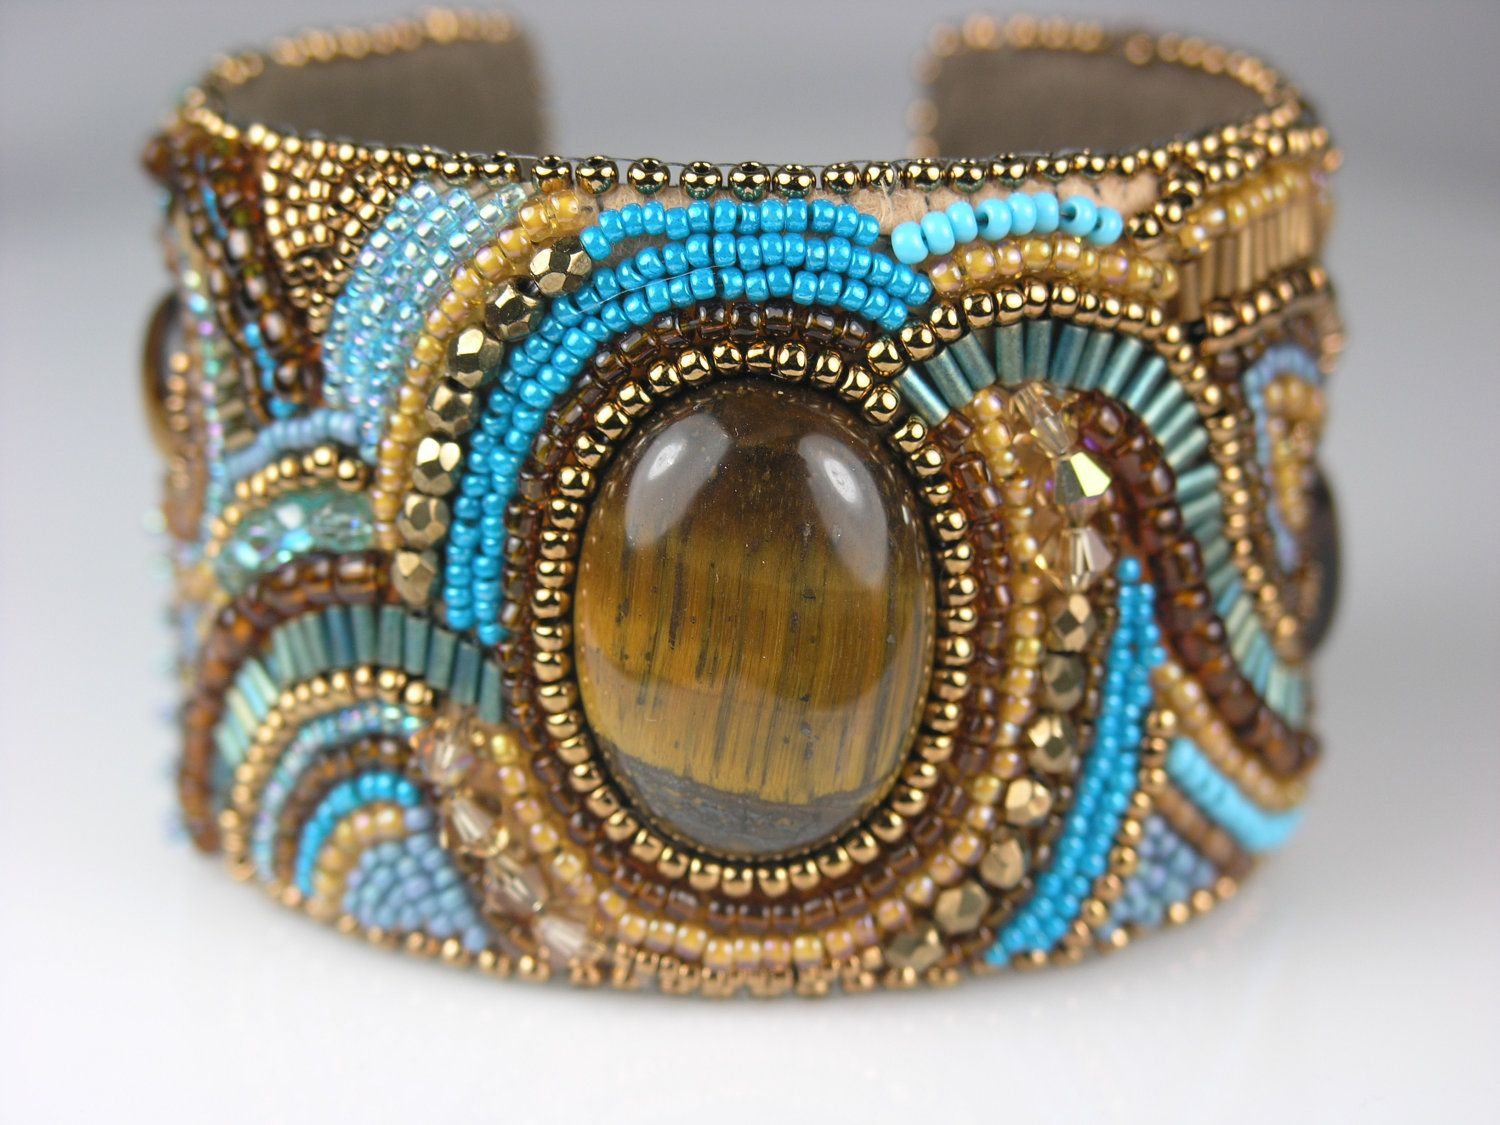 ~~Beaded Bead Embroidered Cuff (Mother Earth) by LiTelle on etsy~~